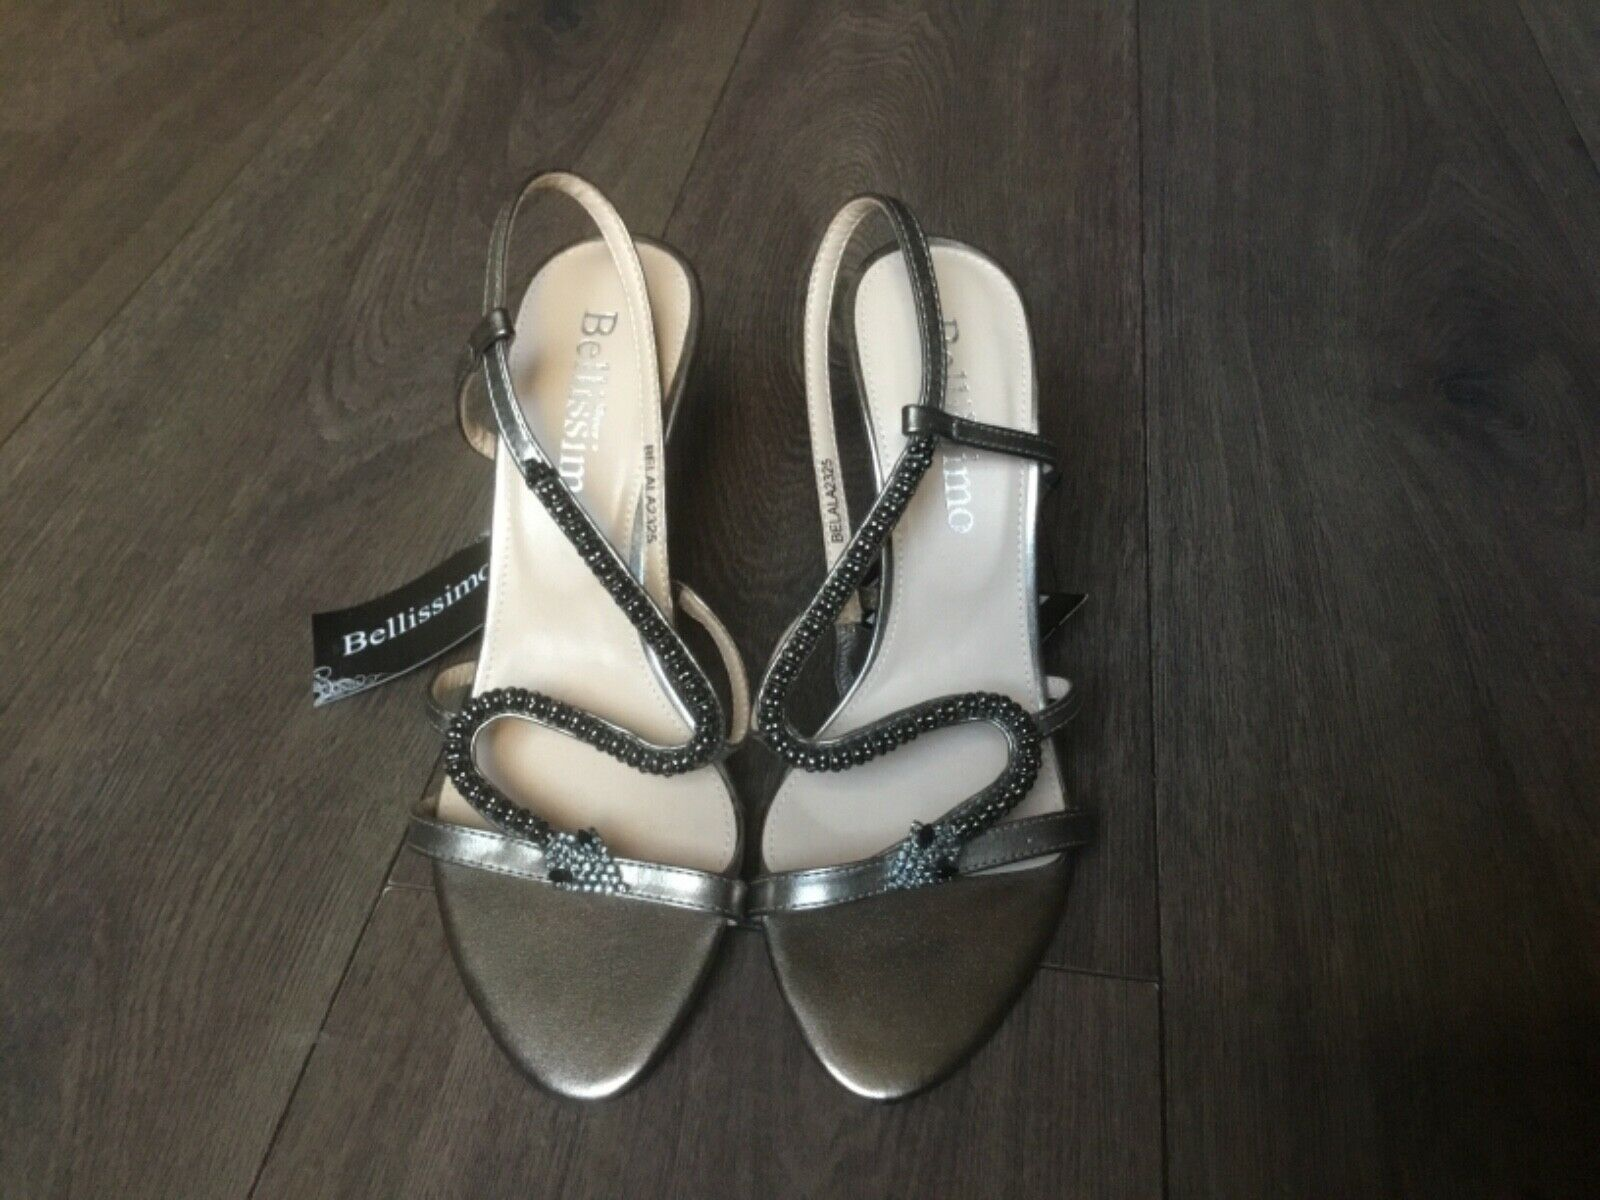 BELISSIMO PEWTER SIZE 3 EMBELISHED HIGH HEEL SHOES  49.99